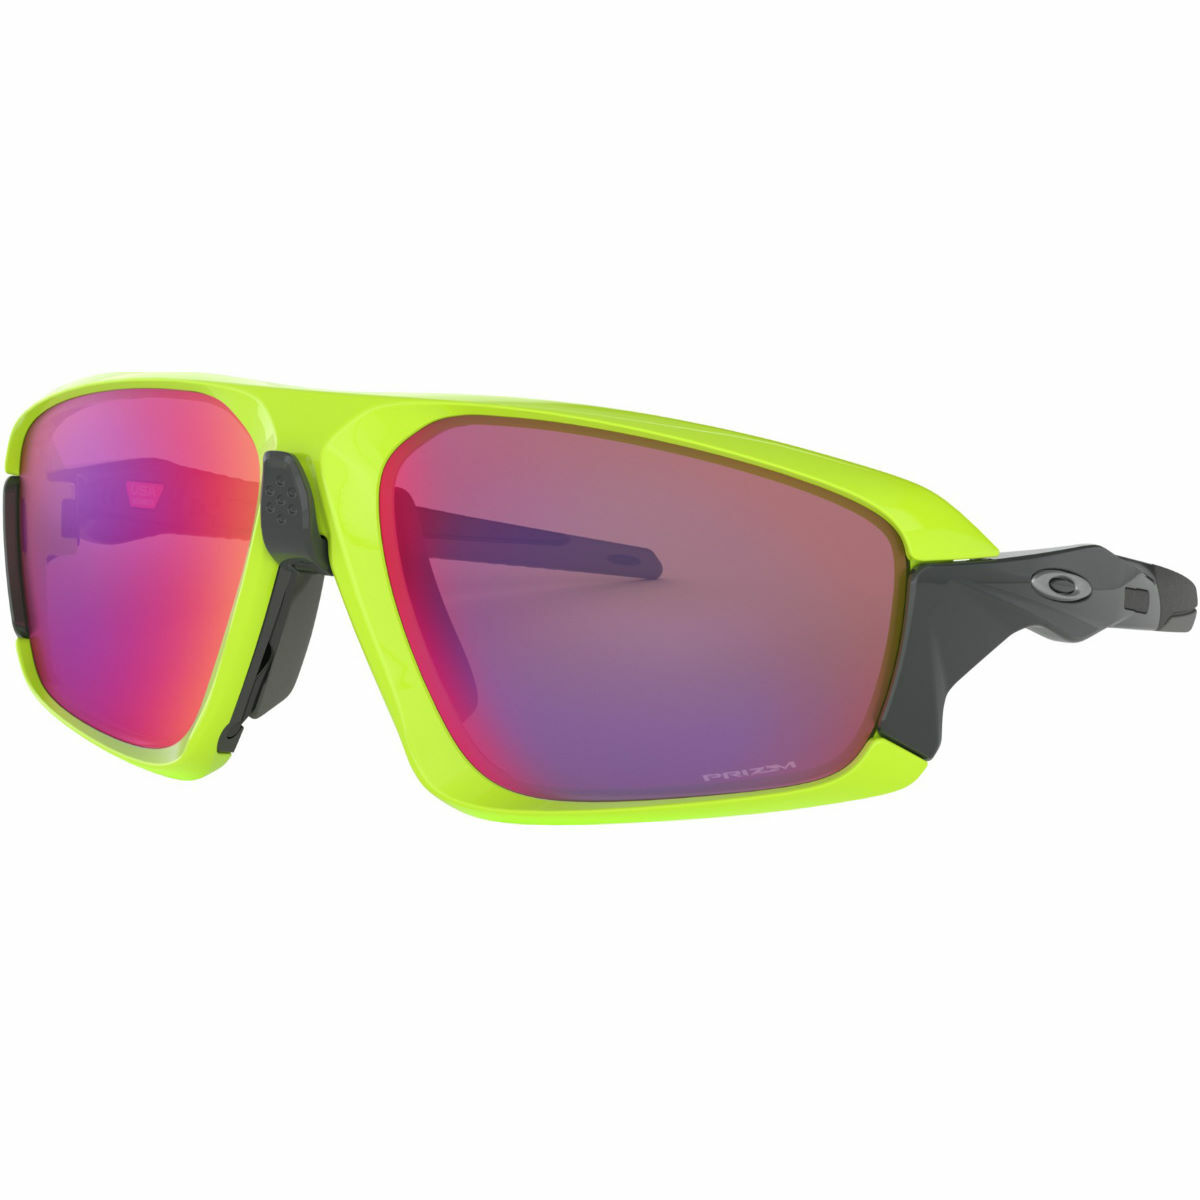 Oakley Field Jacket Prizm Road Sunglasses - Full UV Protection, Advancer Nosebridge system, Suitable for medium lighting conditions (FREE DELIVERY).